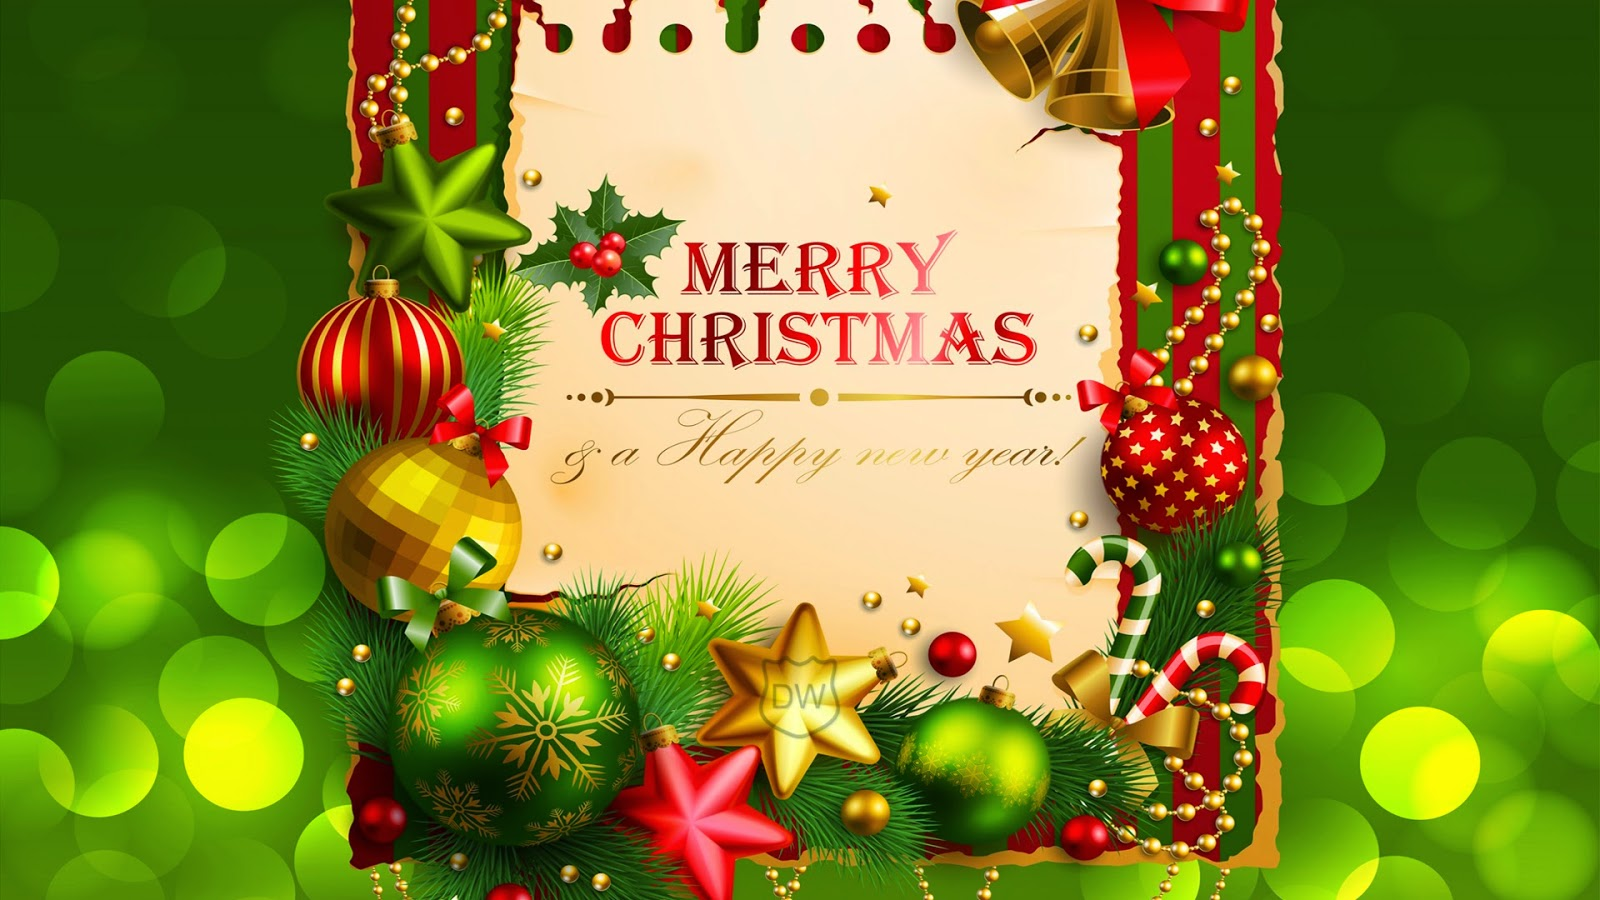 Updated merry christmas images 2017 christmas pictures free merry christmas images 2017 download m4hsunfo Image collections